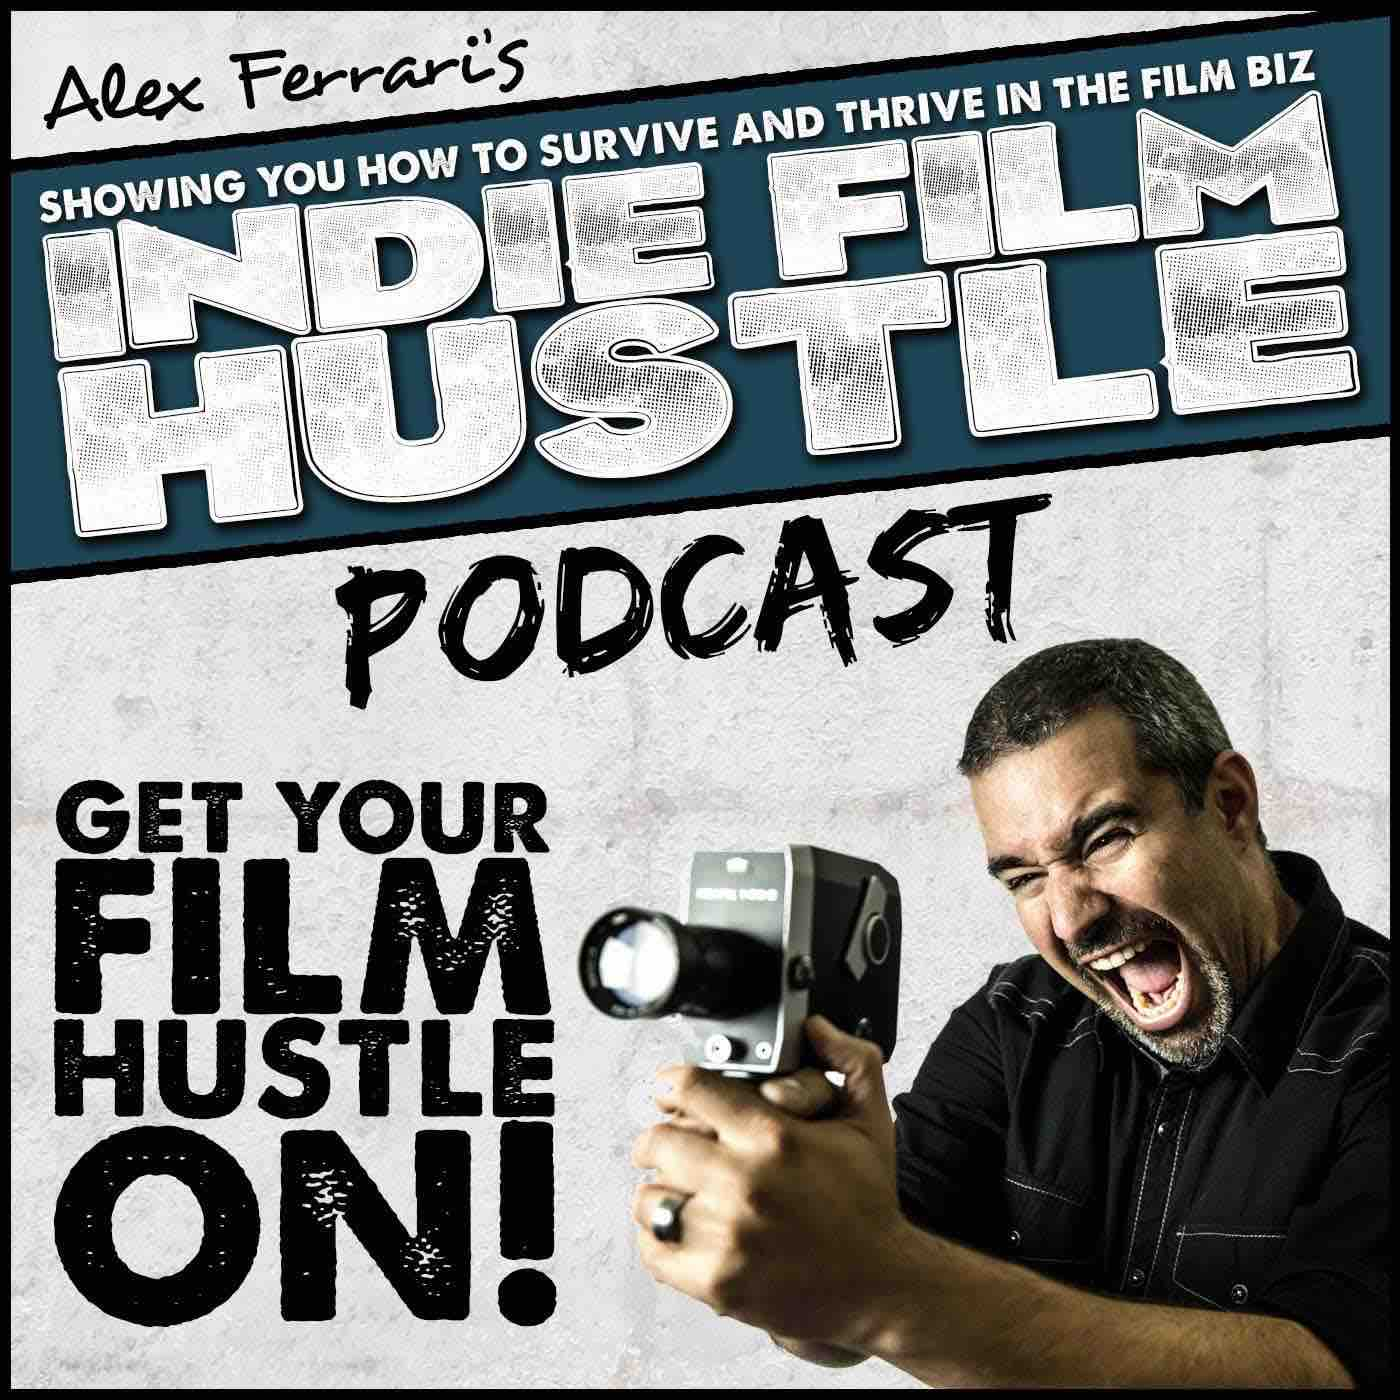 Best Filmmaking and Screenwriting Podcasts - Indie Film Hustle Podcast